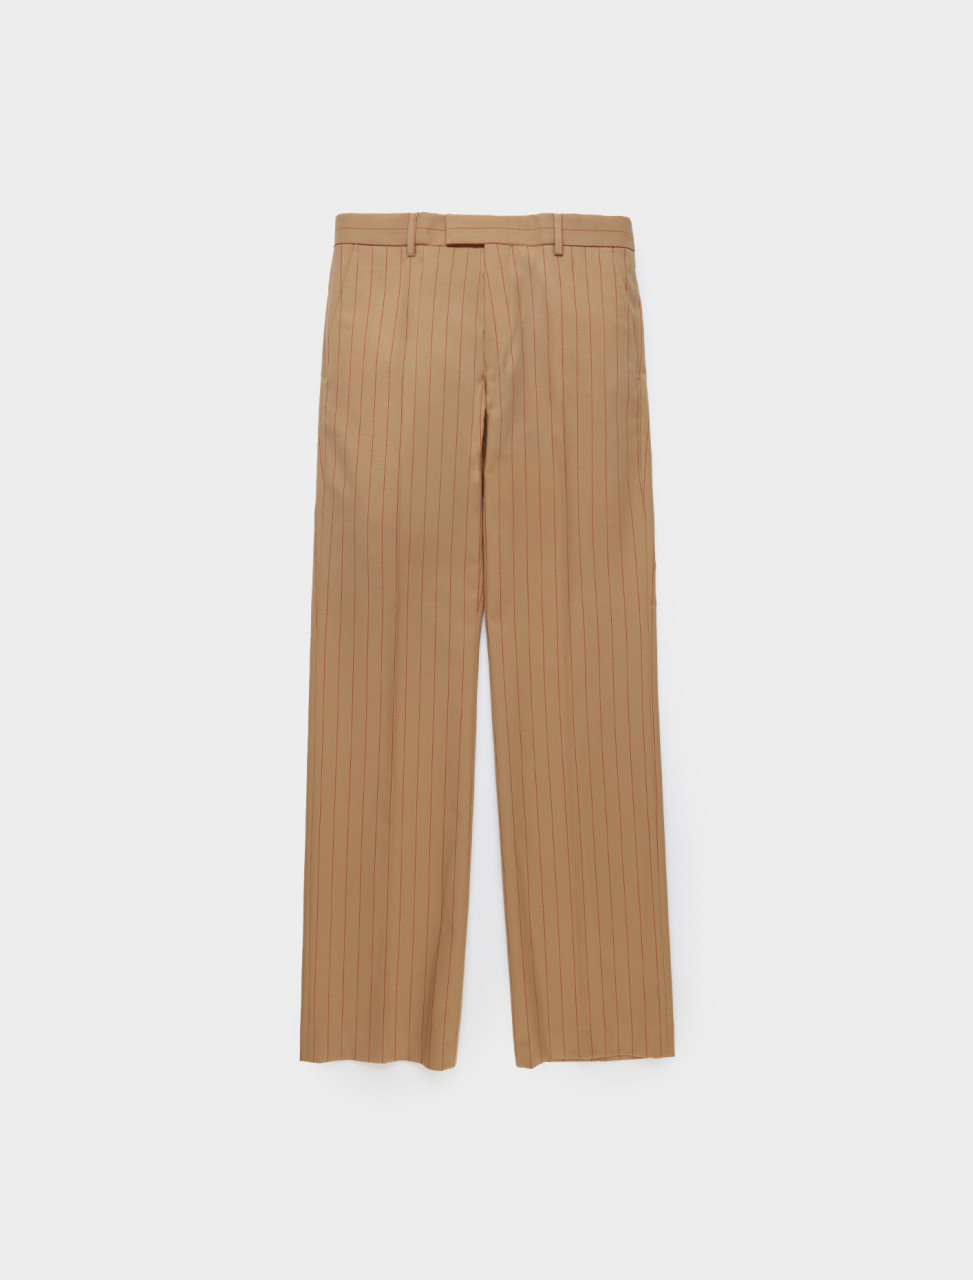 Dries van Noten Prowse Trouser in Camel and Red Pinstripe Front Detail